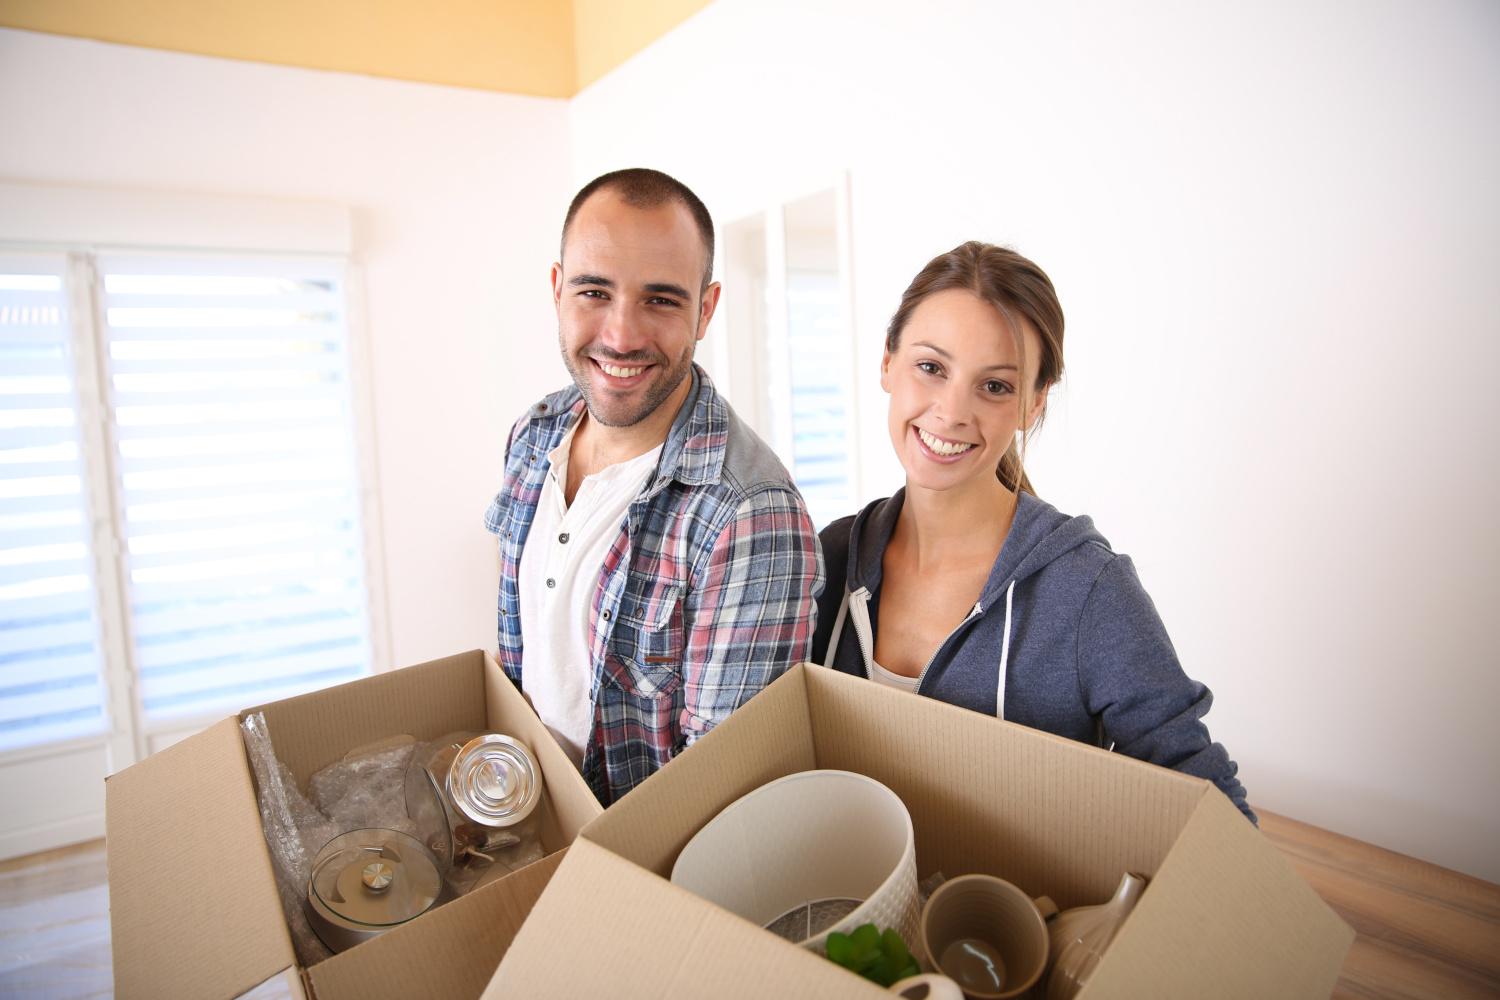 couple packing up boxes. Where to start declutter your home without overwhelm